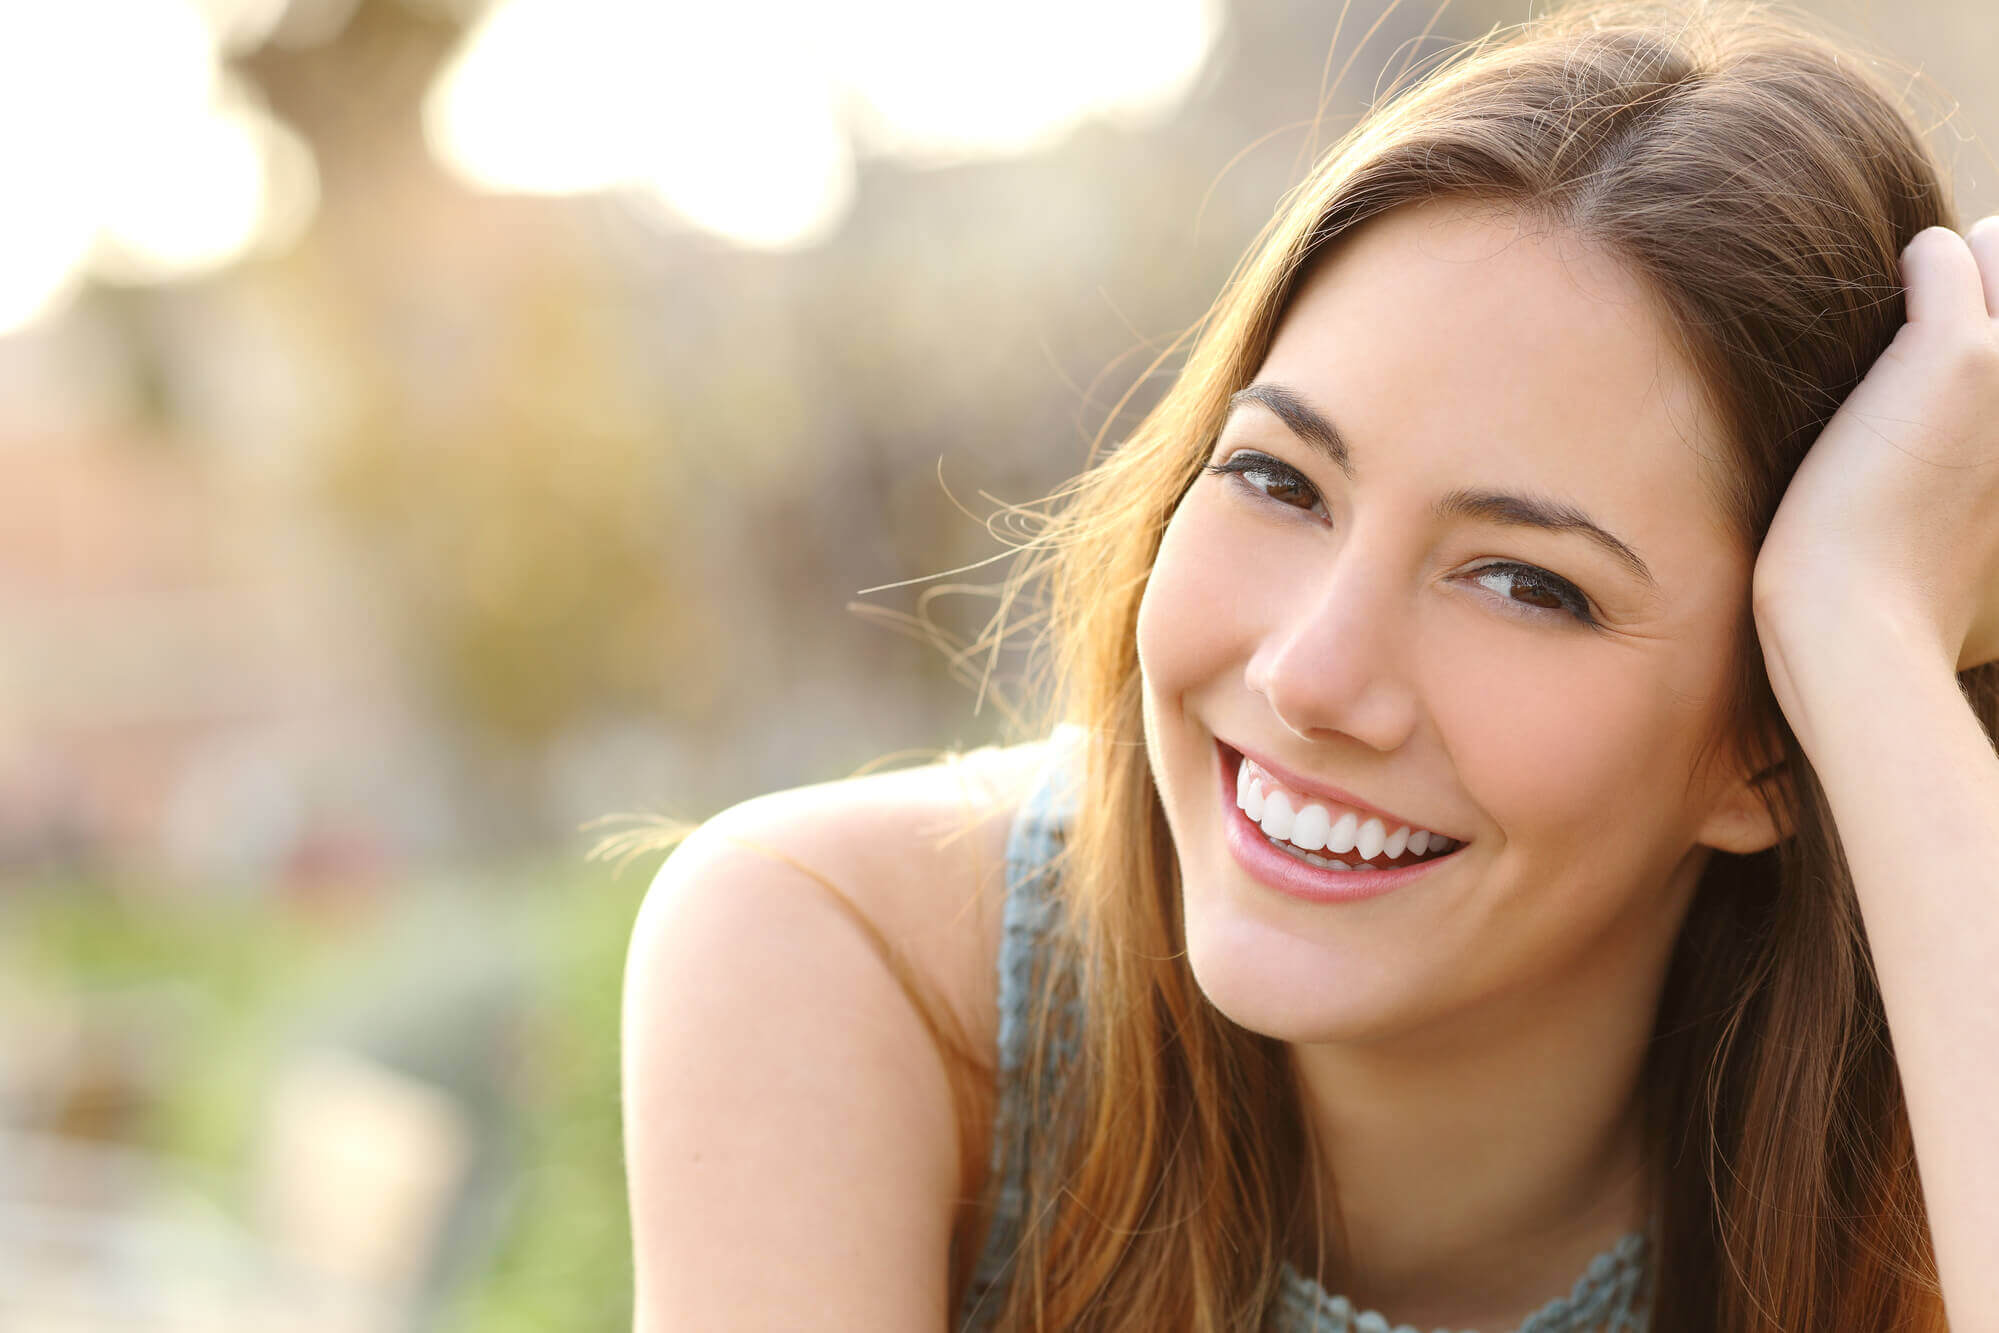 where to get best teeth whitening north miami?